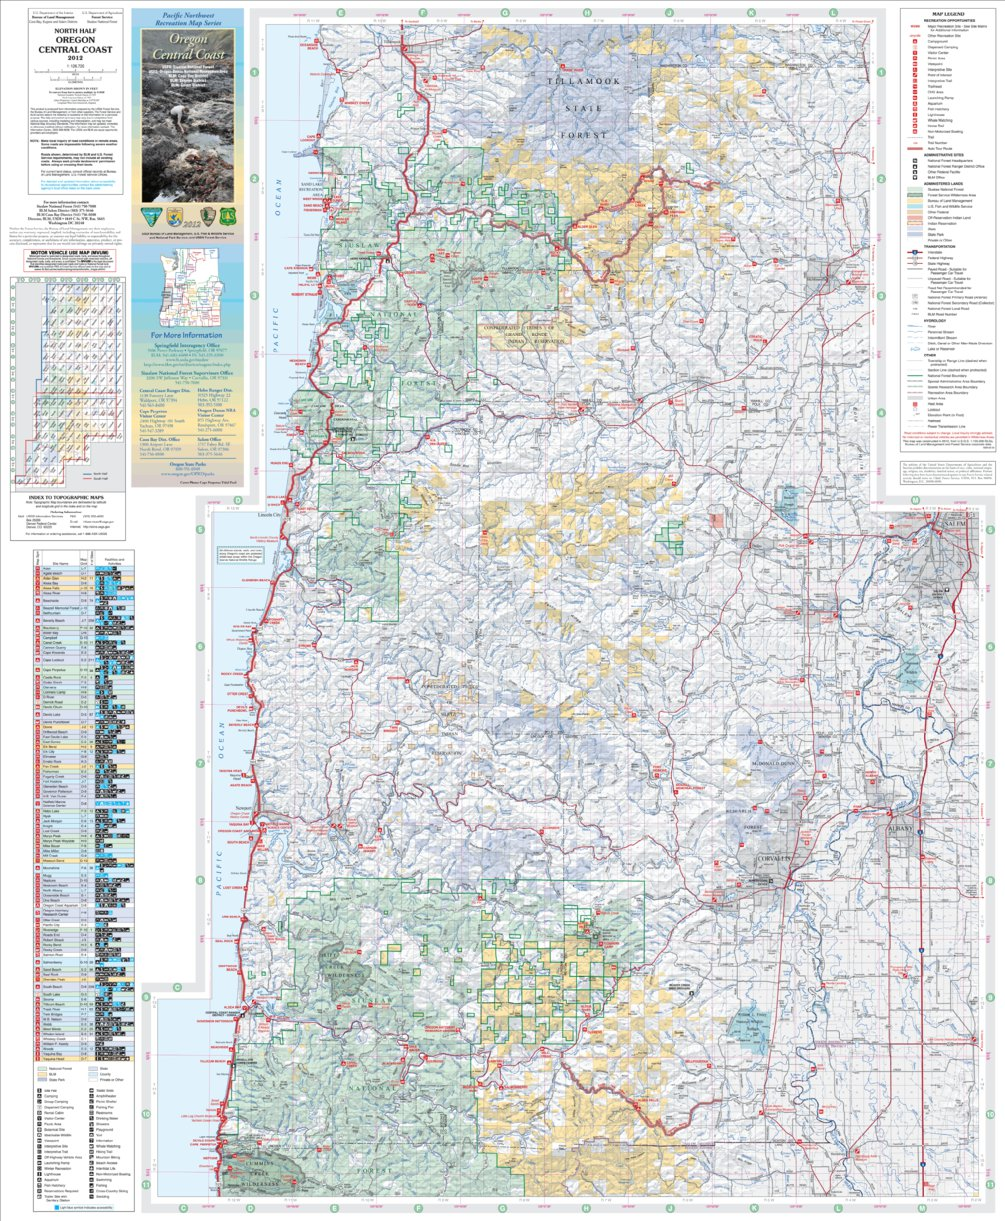 Oregon Central Coast Recreation Map North US Forest Service R6